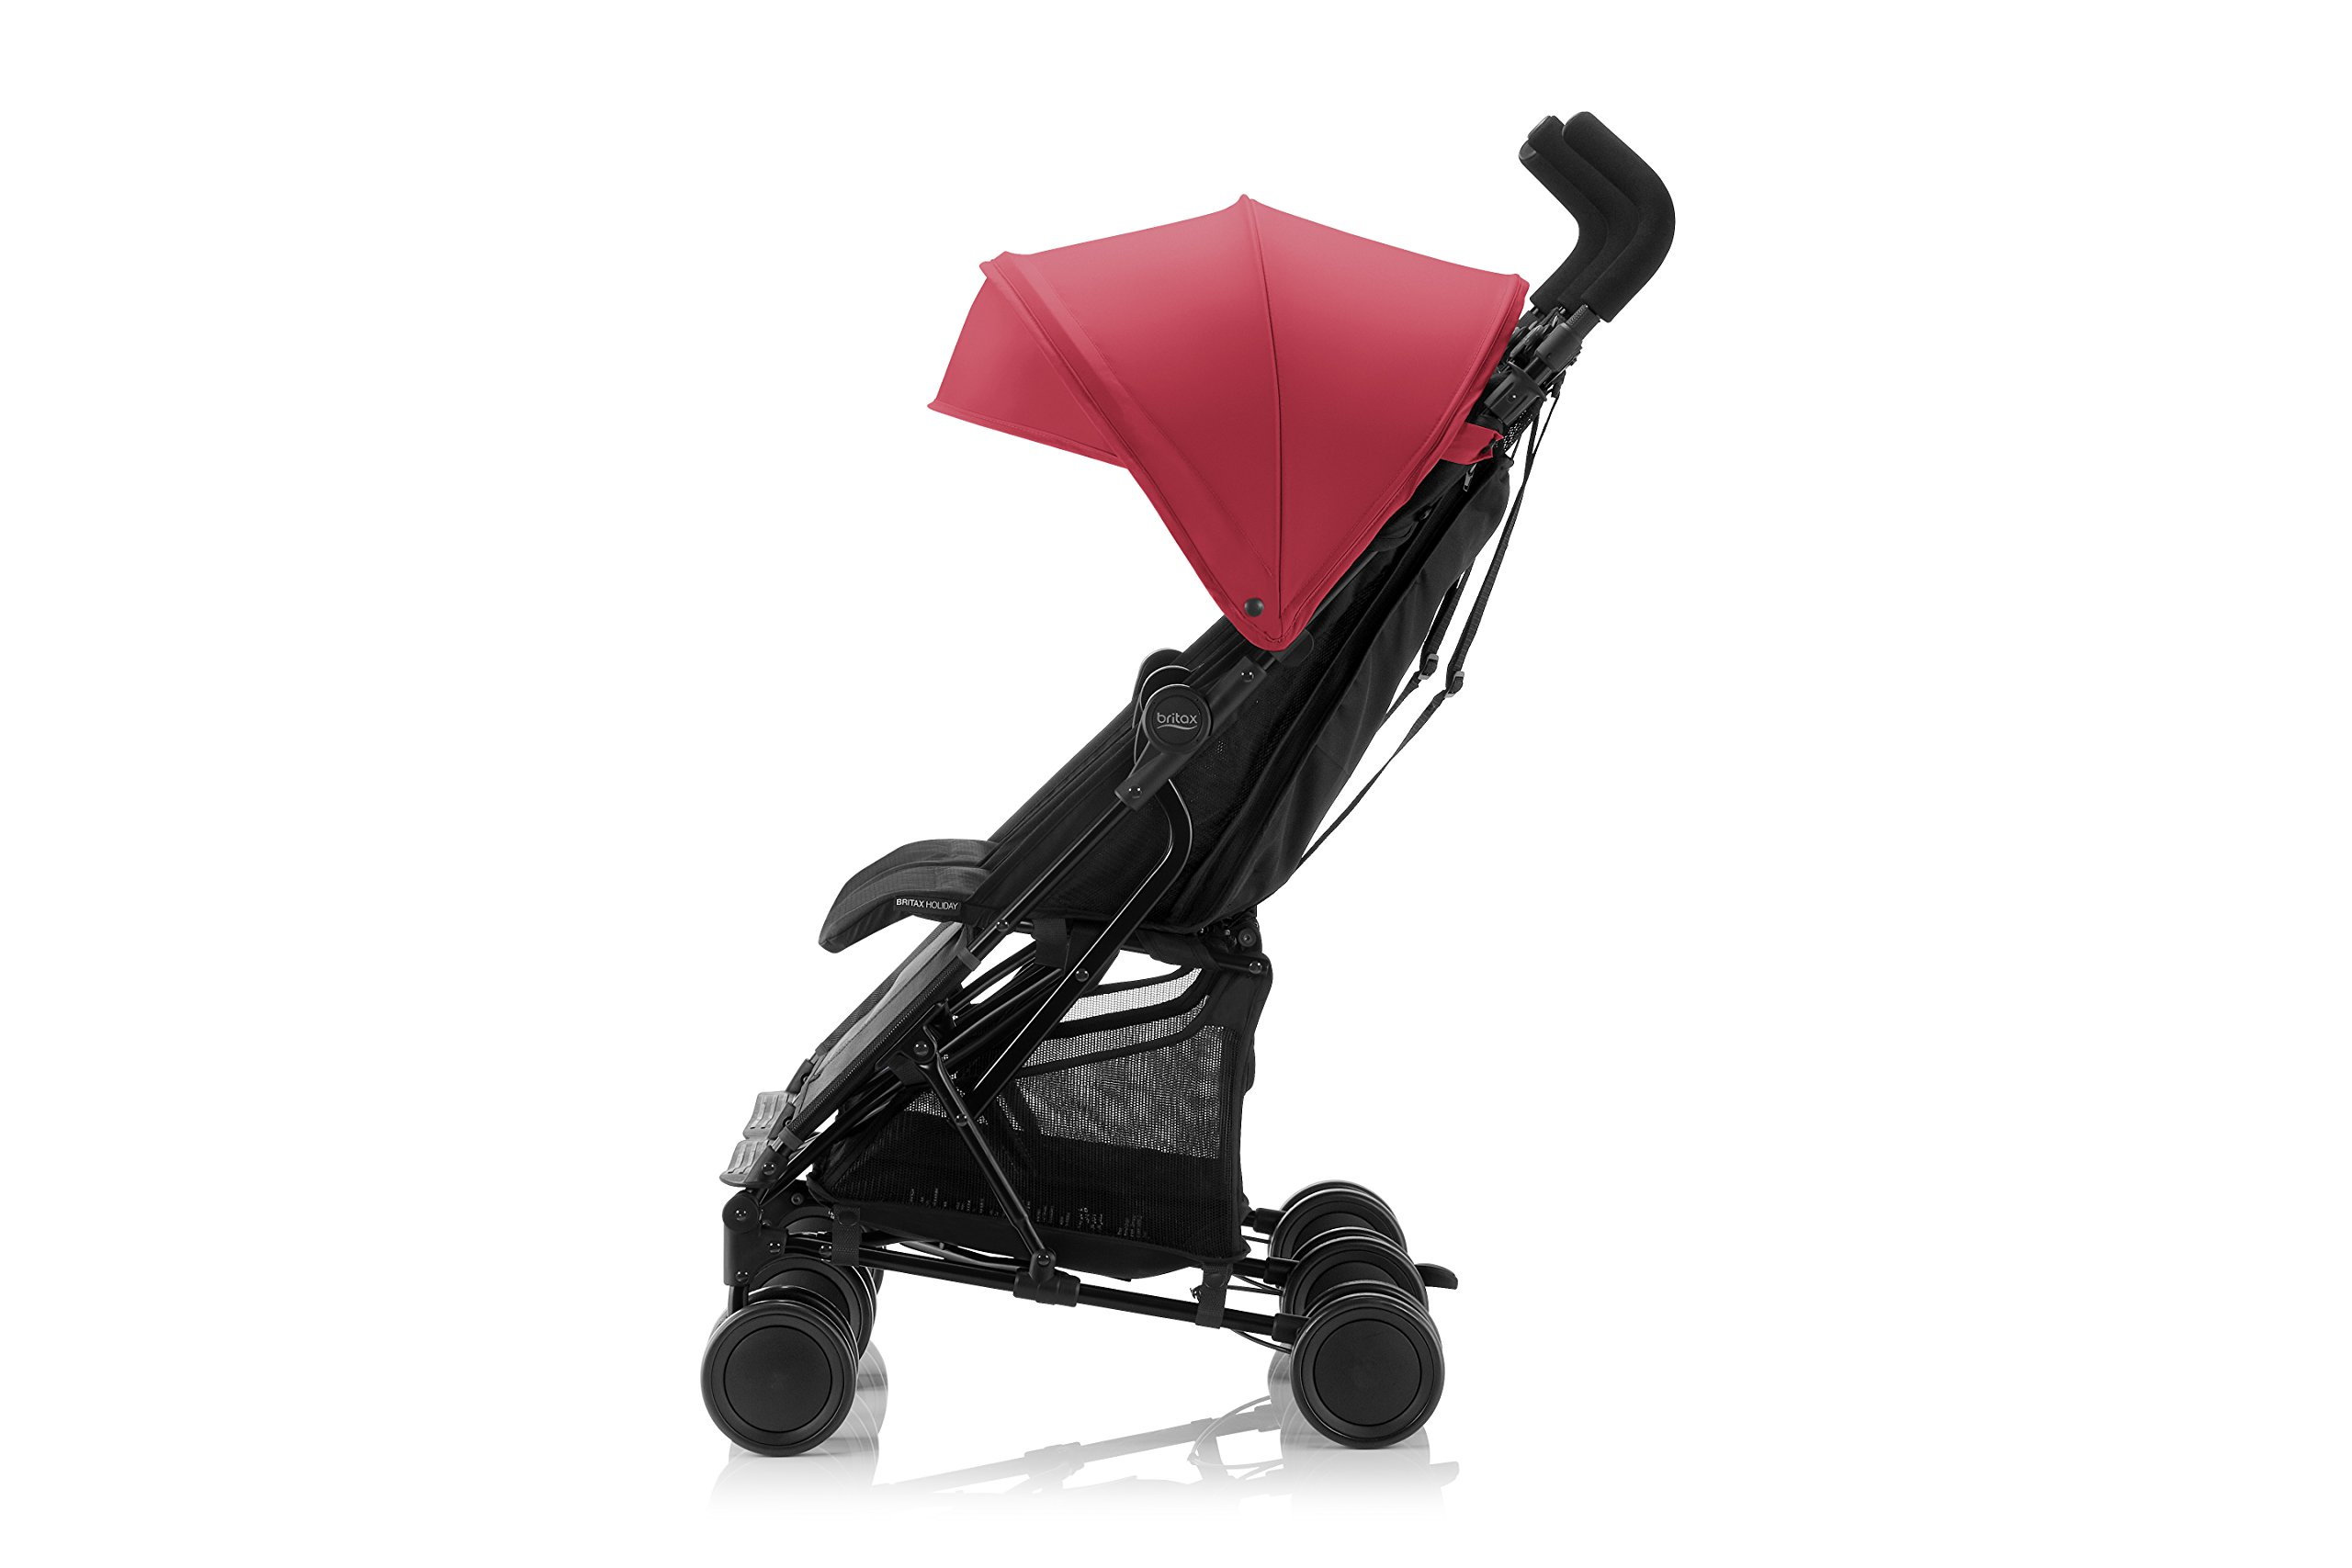 Britax Römer HOLIDAY DOUBLE Pushchair (6 months - 15 kg|3 years ) - Red/Blue  Reclining backrest - you can make your child's journey even more convenient with the reclining backrest. the backrest can be reclined independently which gives you the flexibility to provide a relaxing sleeping position for each child individually. Seat unit with mesh panels - to keep your child comfortable on hot days, the seat unit has mesh panels on the sides and top of the seat unit for better air circulation. Large hood with sun visor - when taking a nice relaxing stroll in the sun, the large hoods with sun visor are independently adjustable and provide protective shade to your little passenger. 6